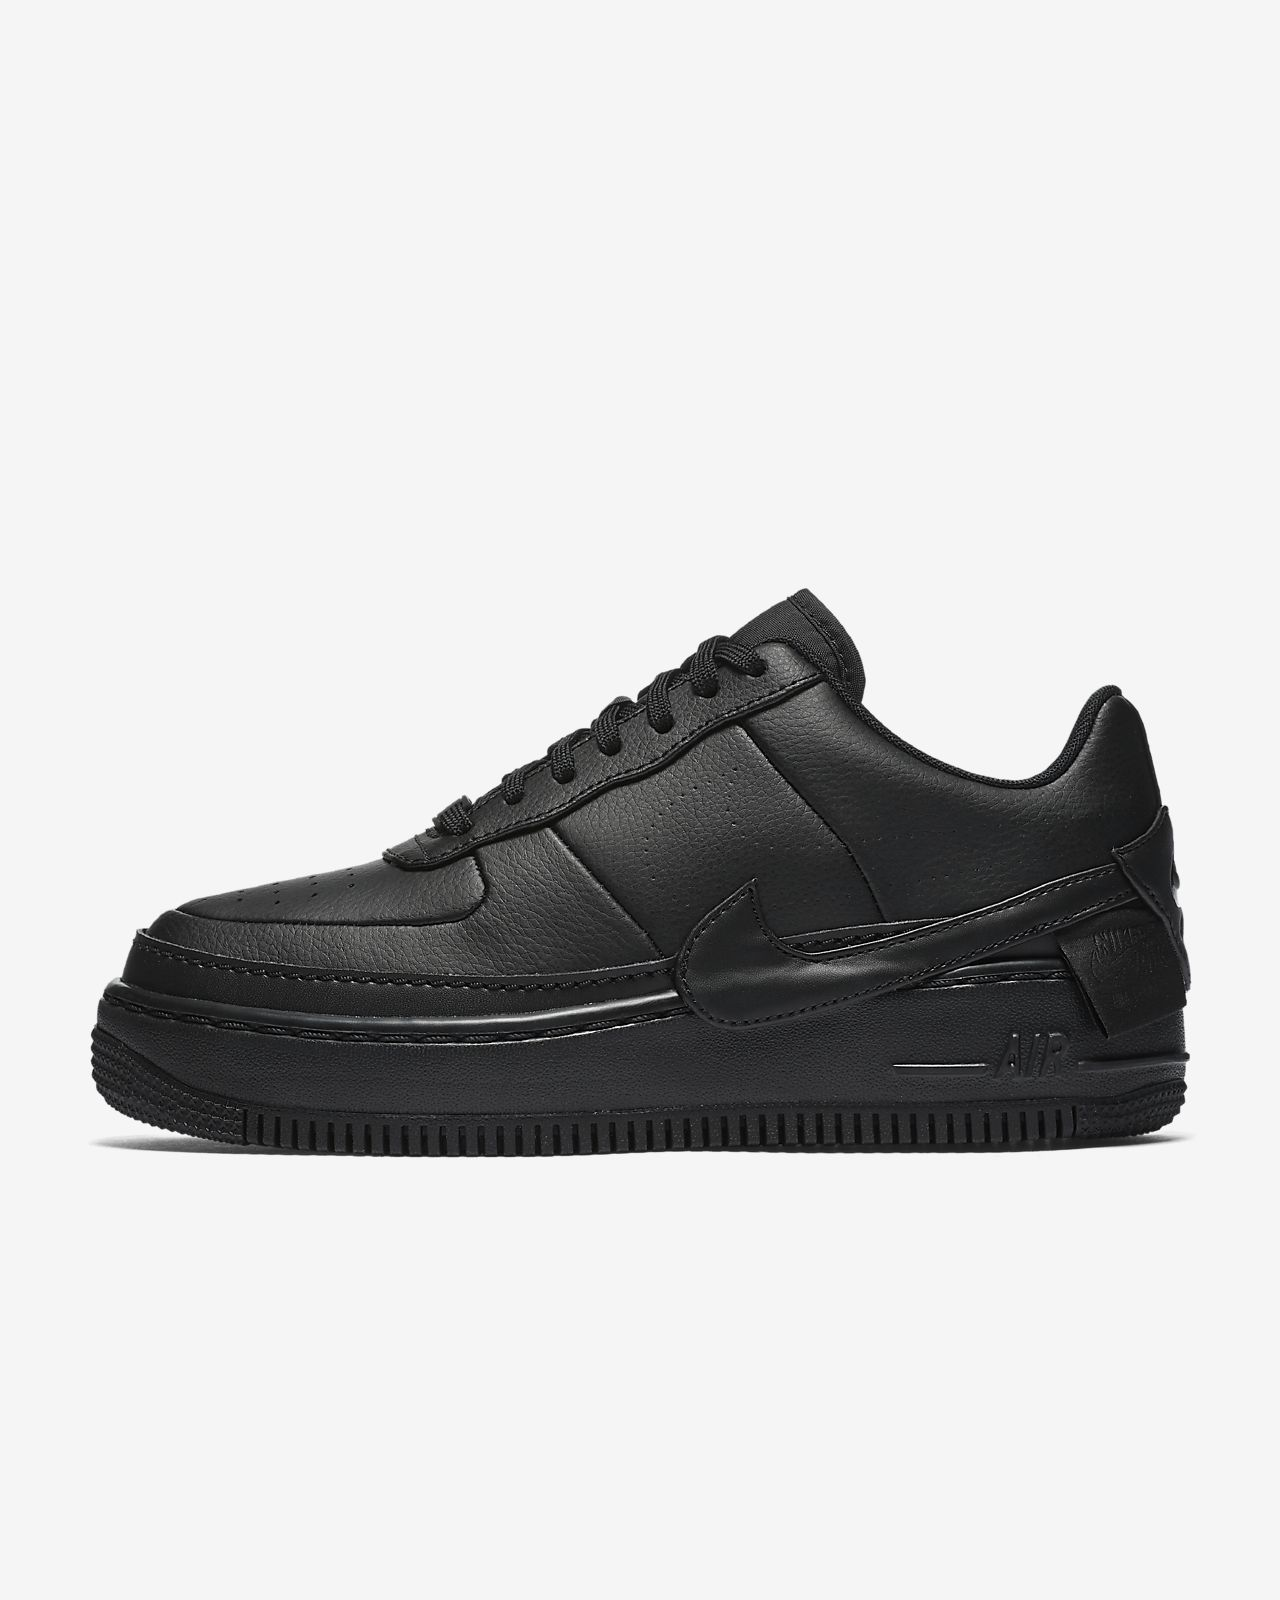 33e4655ff42 Nike Air Force 1 Jester XX Shoe. Nike.com CA